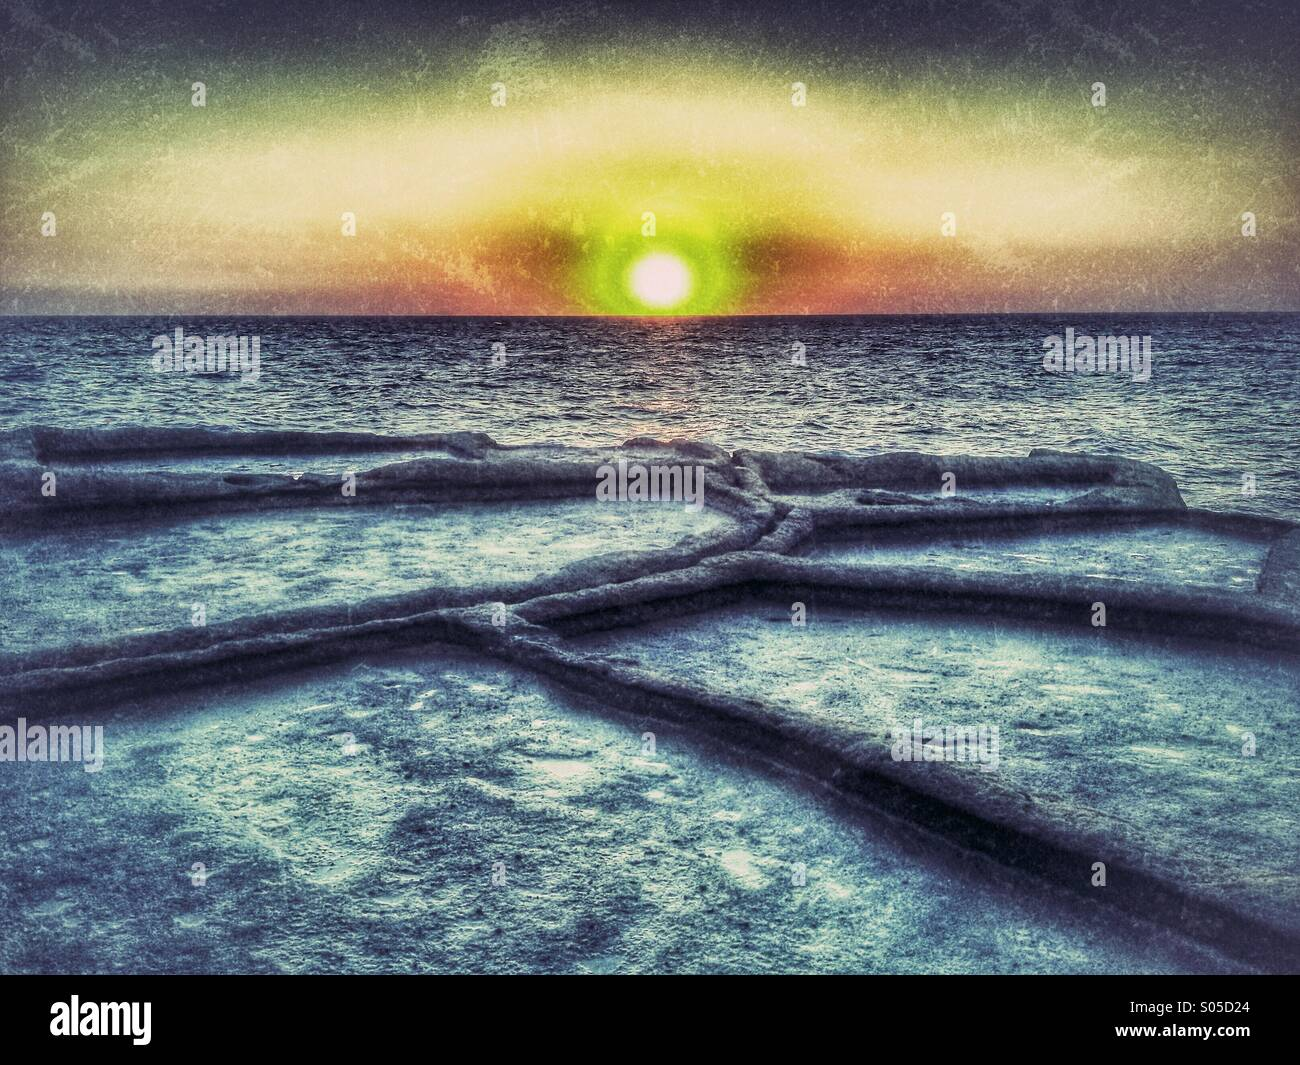 Conceptual rendering of salt pans and seascape at dawn - Stock Image